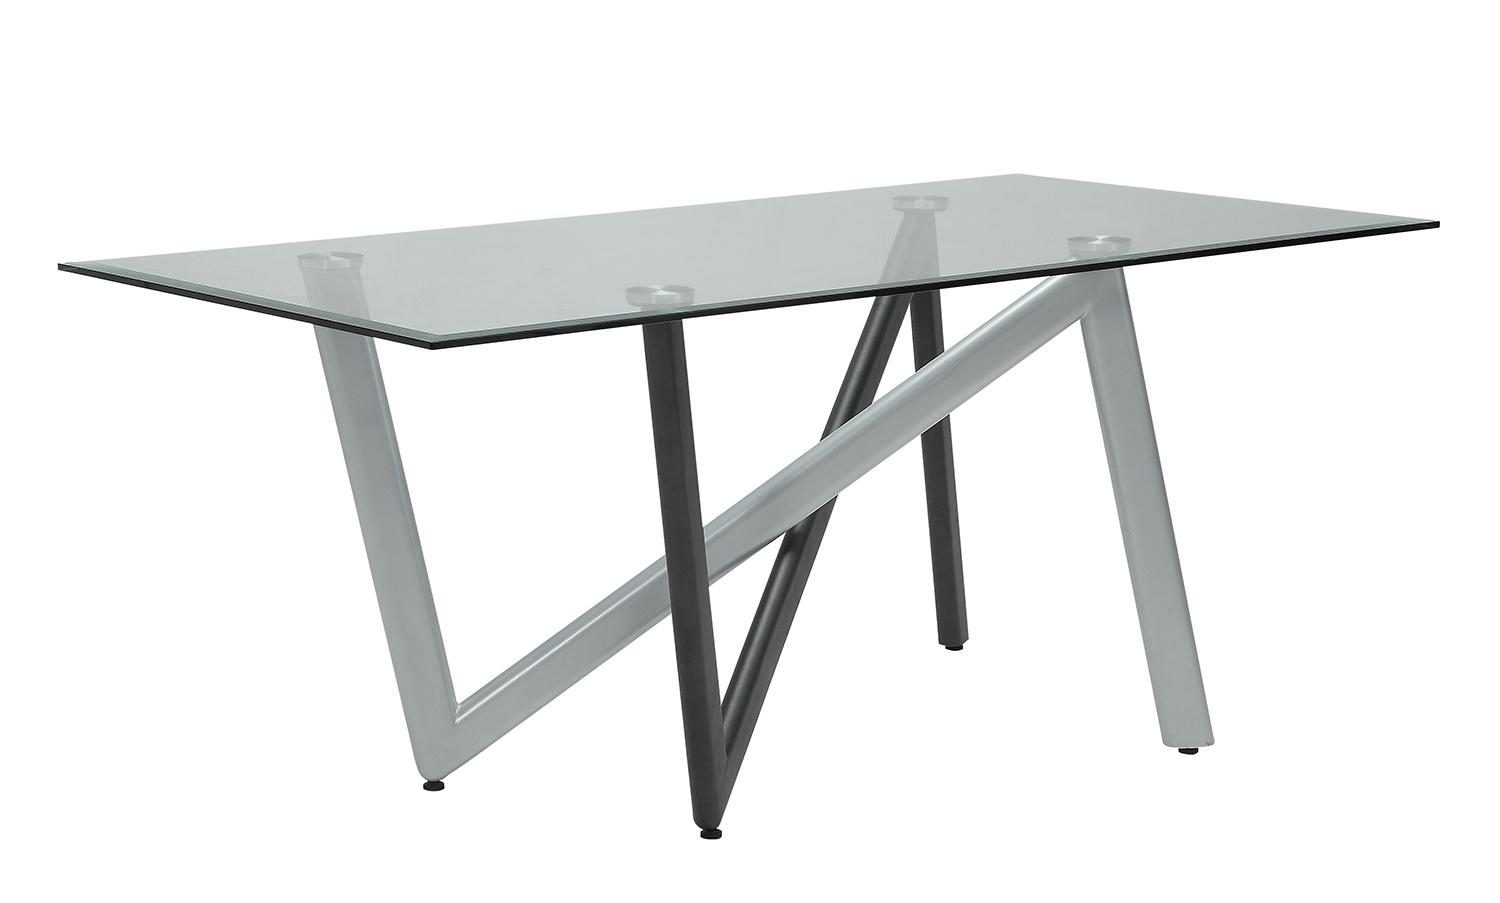 Acme Hassel Dining Table - Silver/Gunmetal/Clear Glass